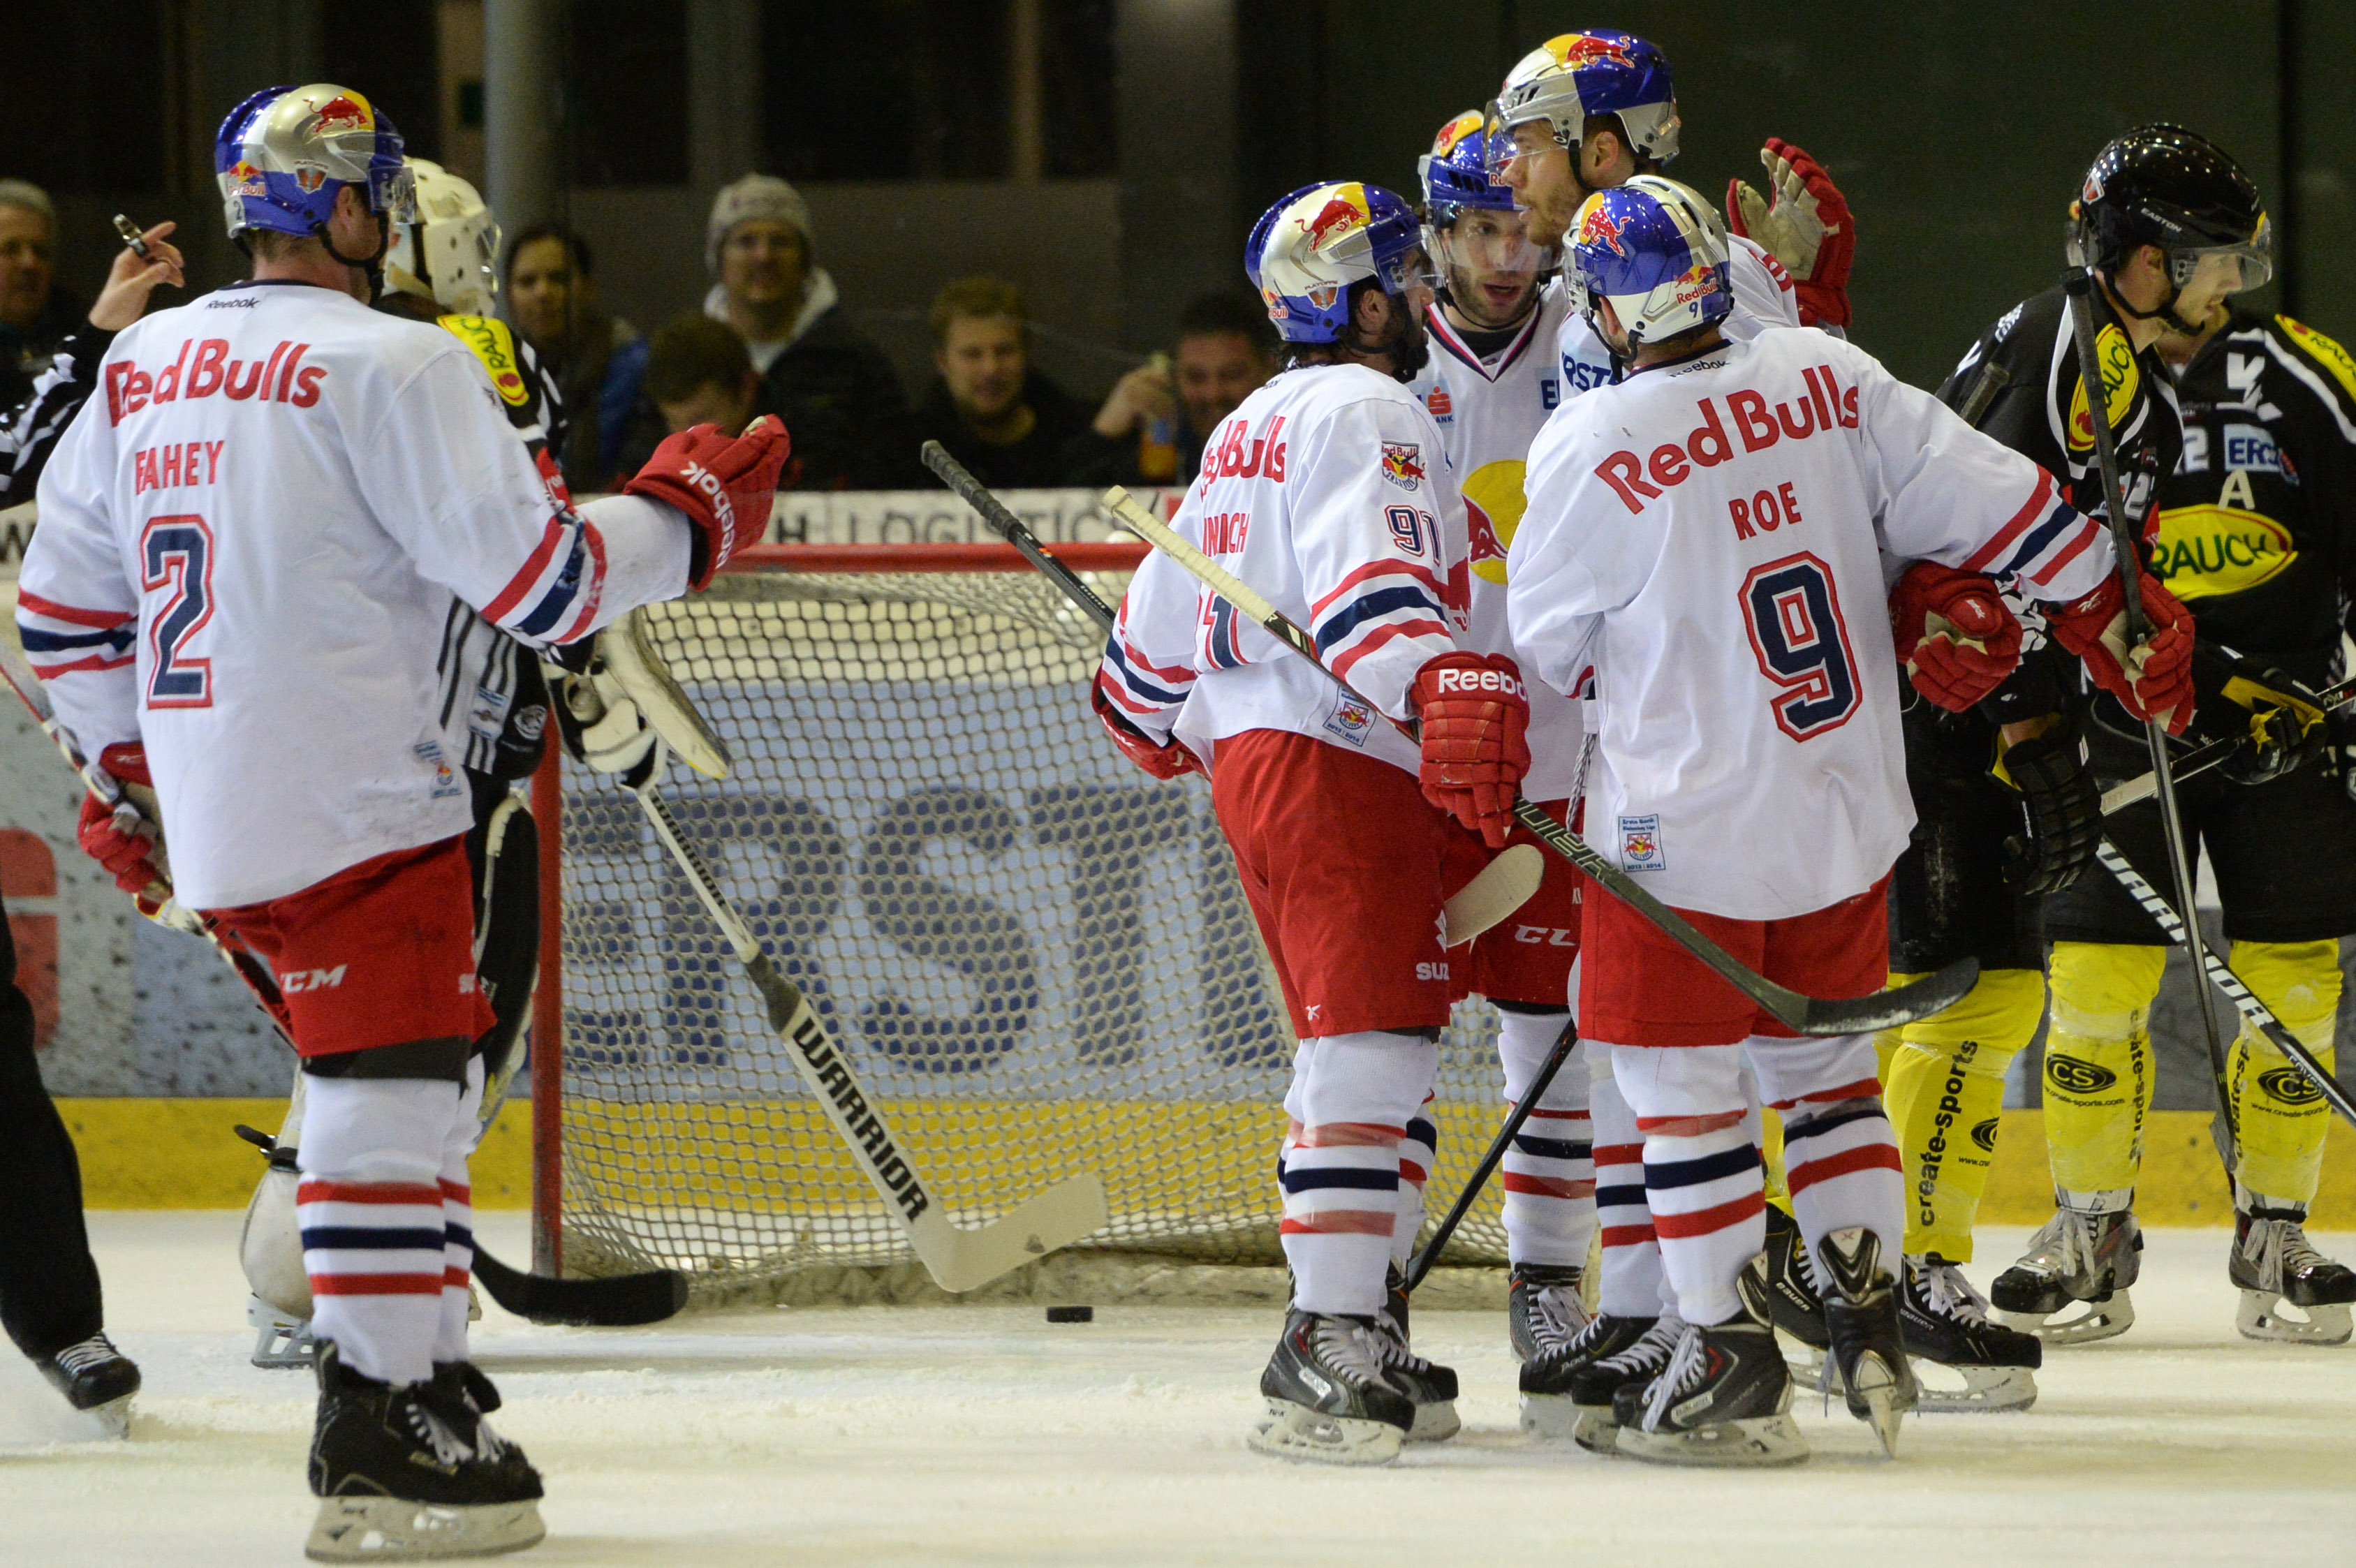 ICE HOCKEY – Dornbirn vs EC RBS